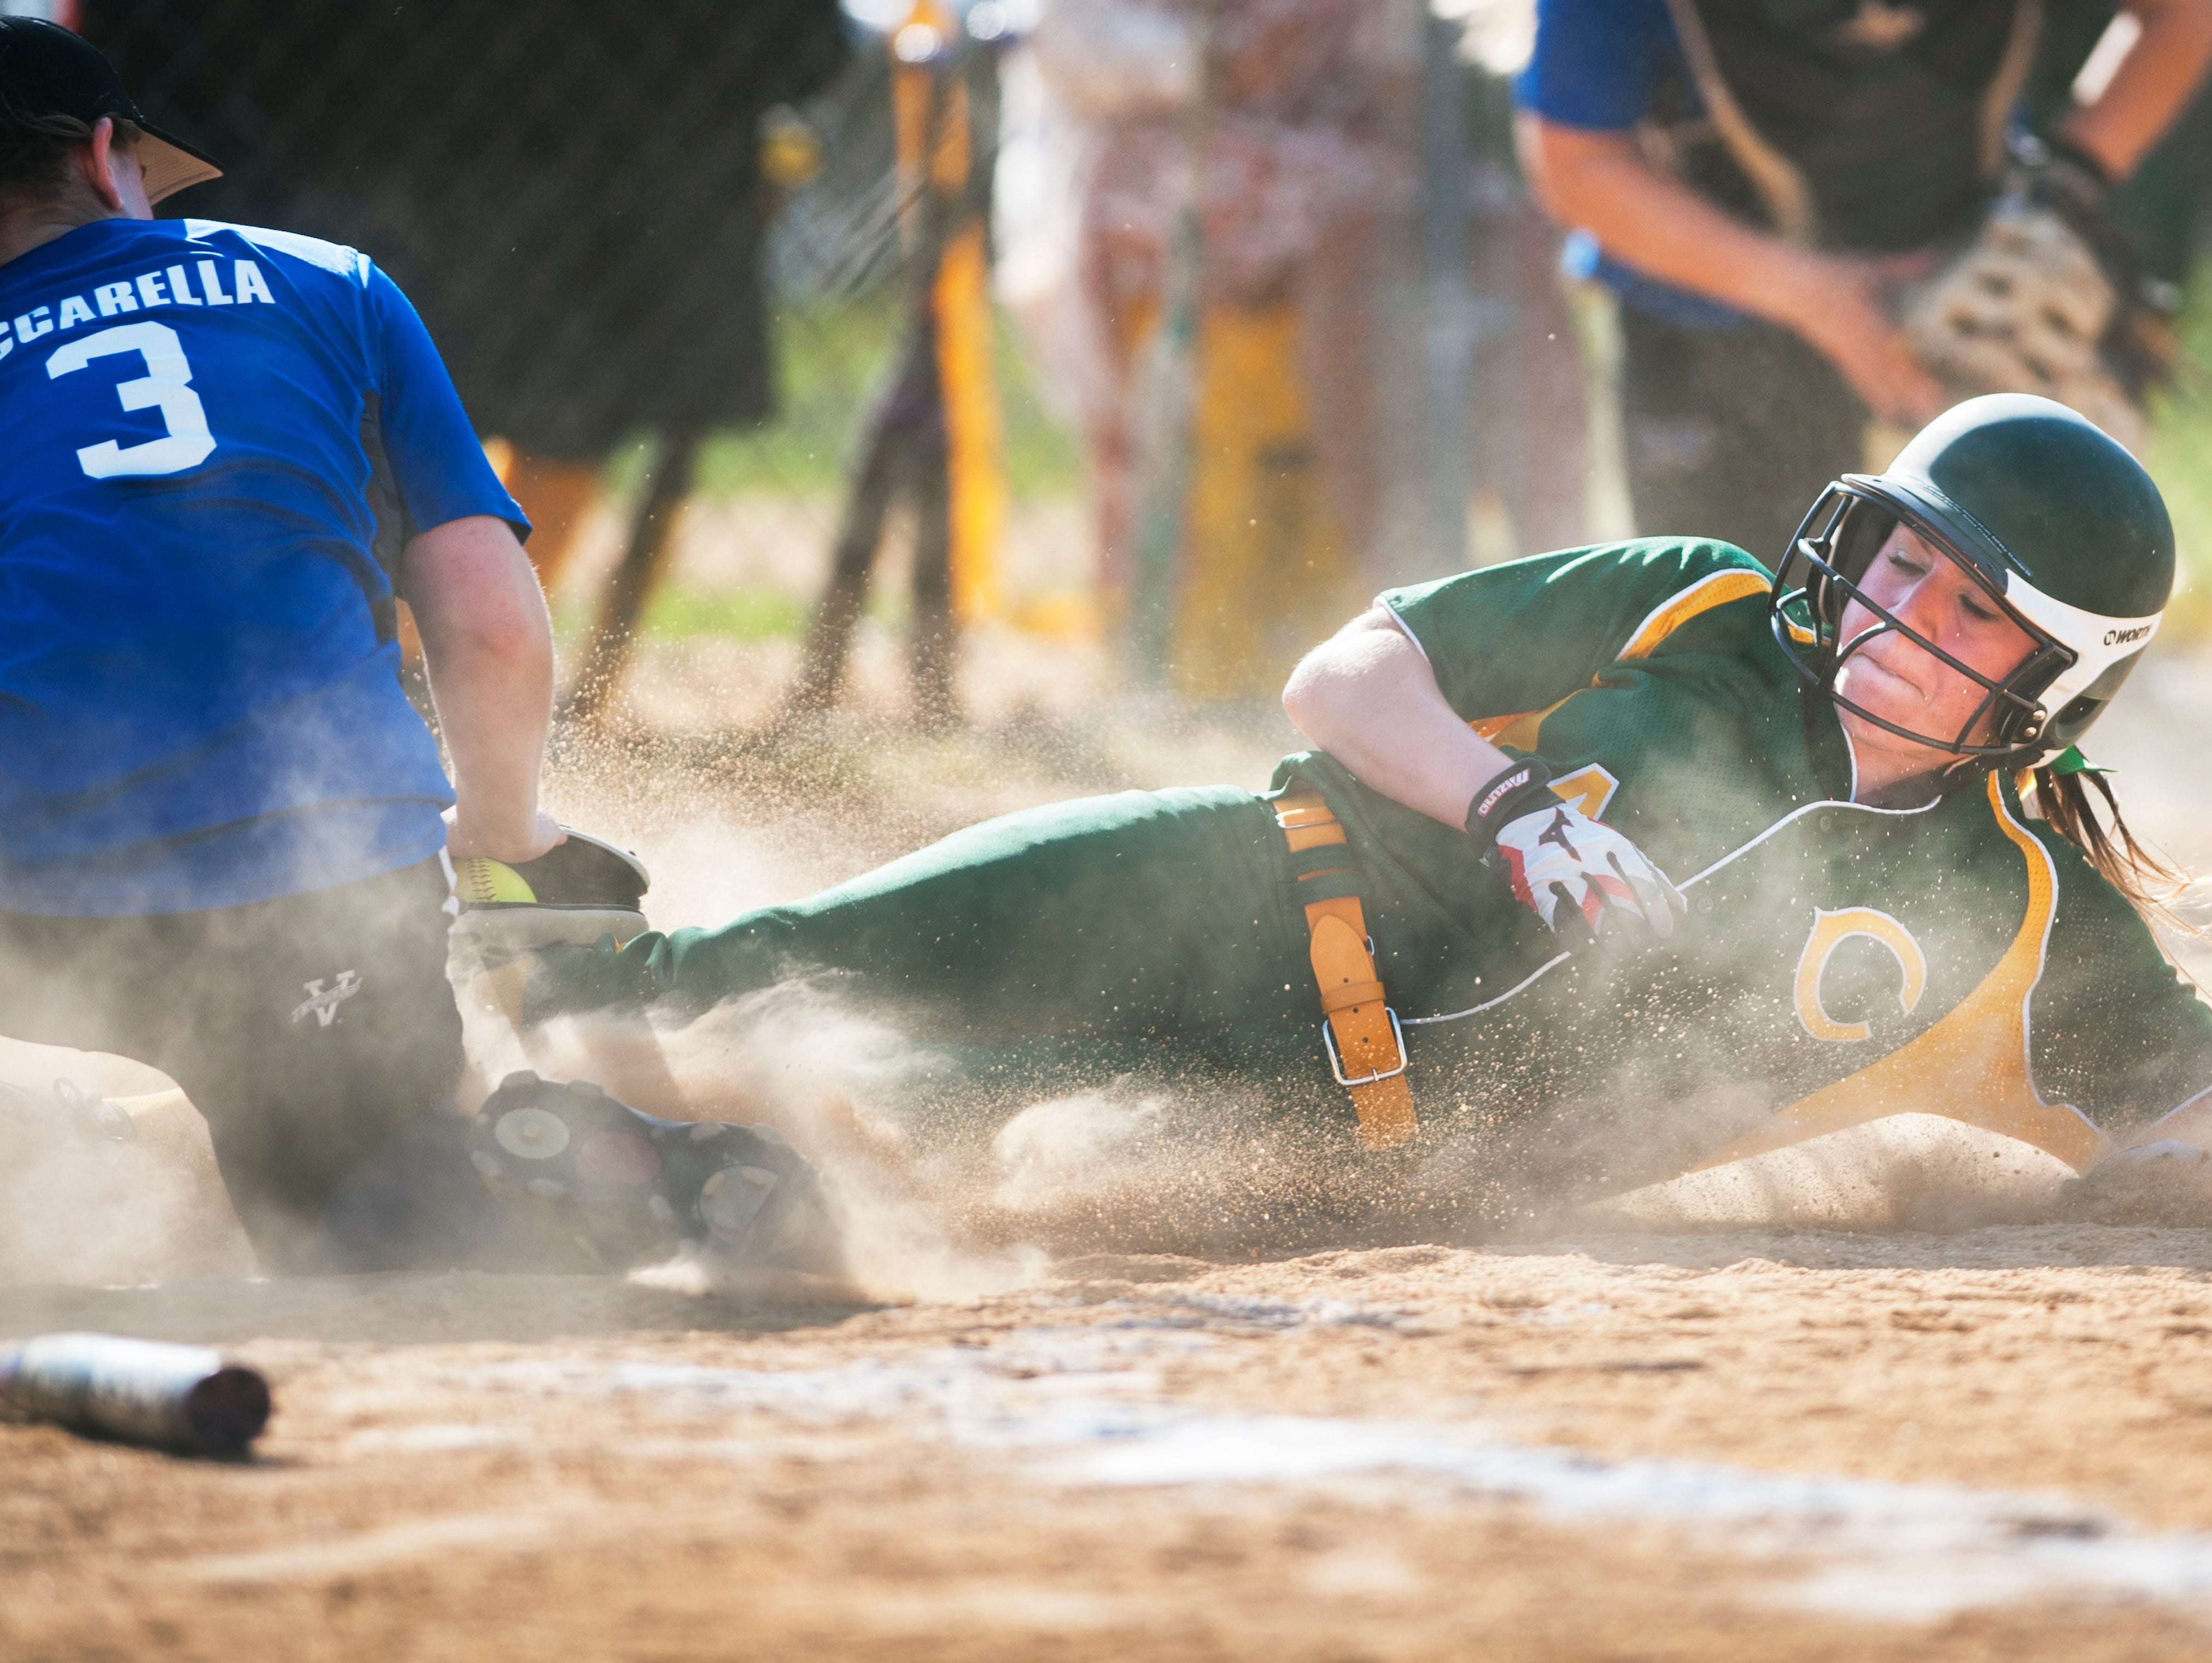 Clearview's Miranda Turner, right, scores the game winning run as Hammonton's Nicole Vaccarella covers the plate, after a throwing error in the bottom of the 6th inning of Wednesdays softball game played at Clearview High School. 04.29.15